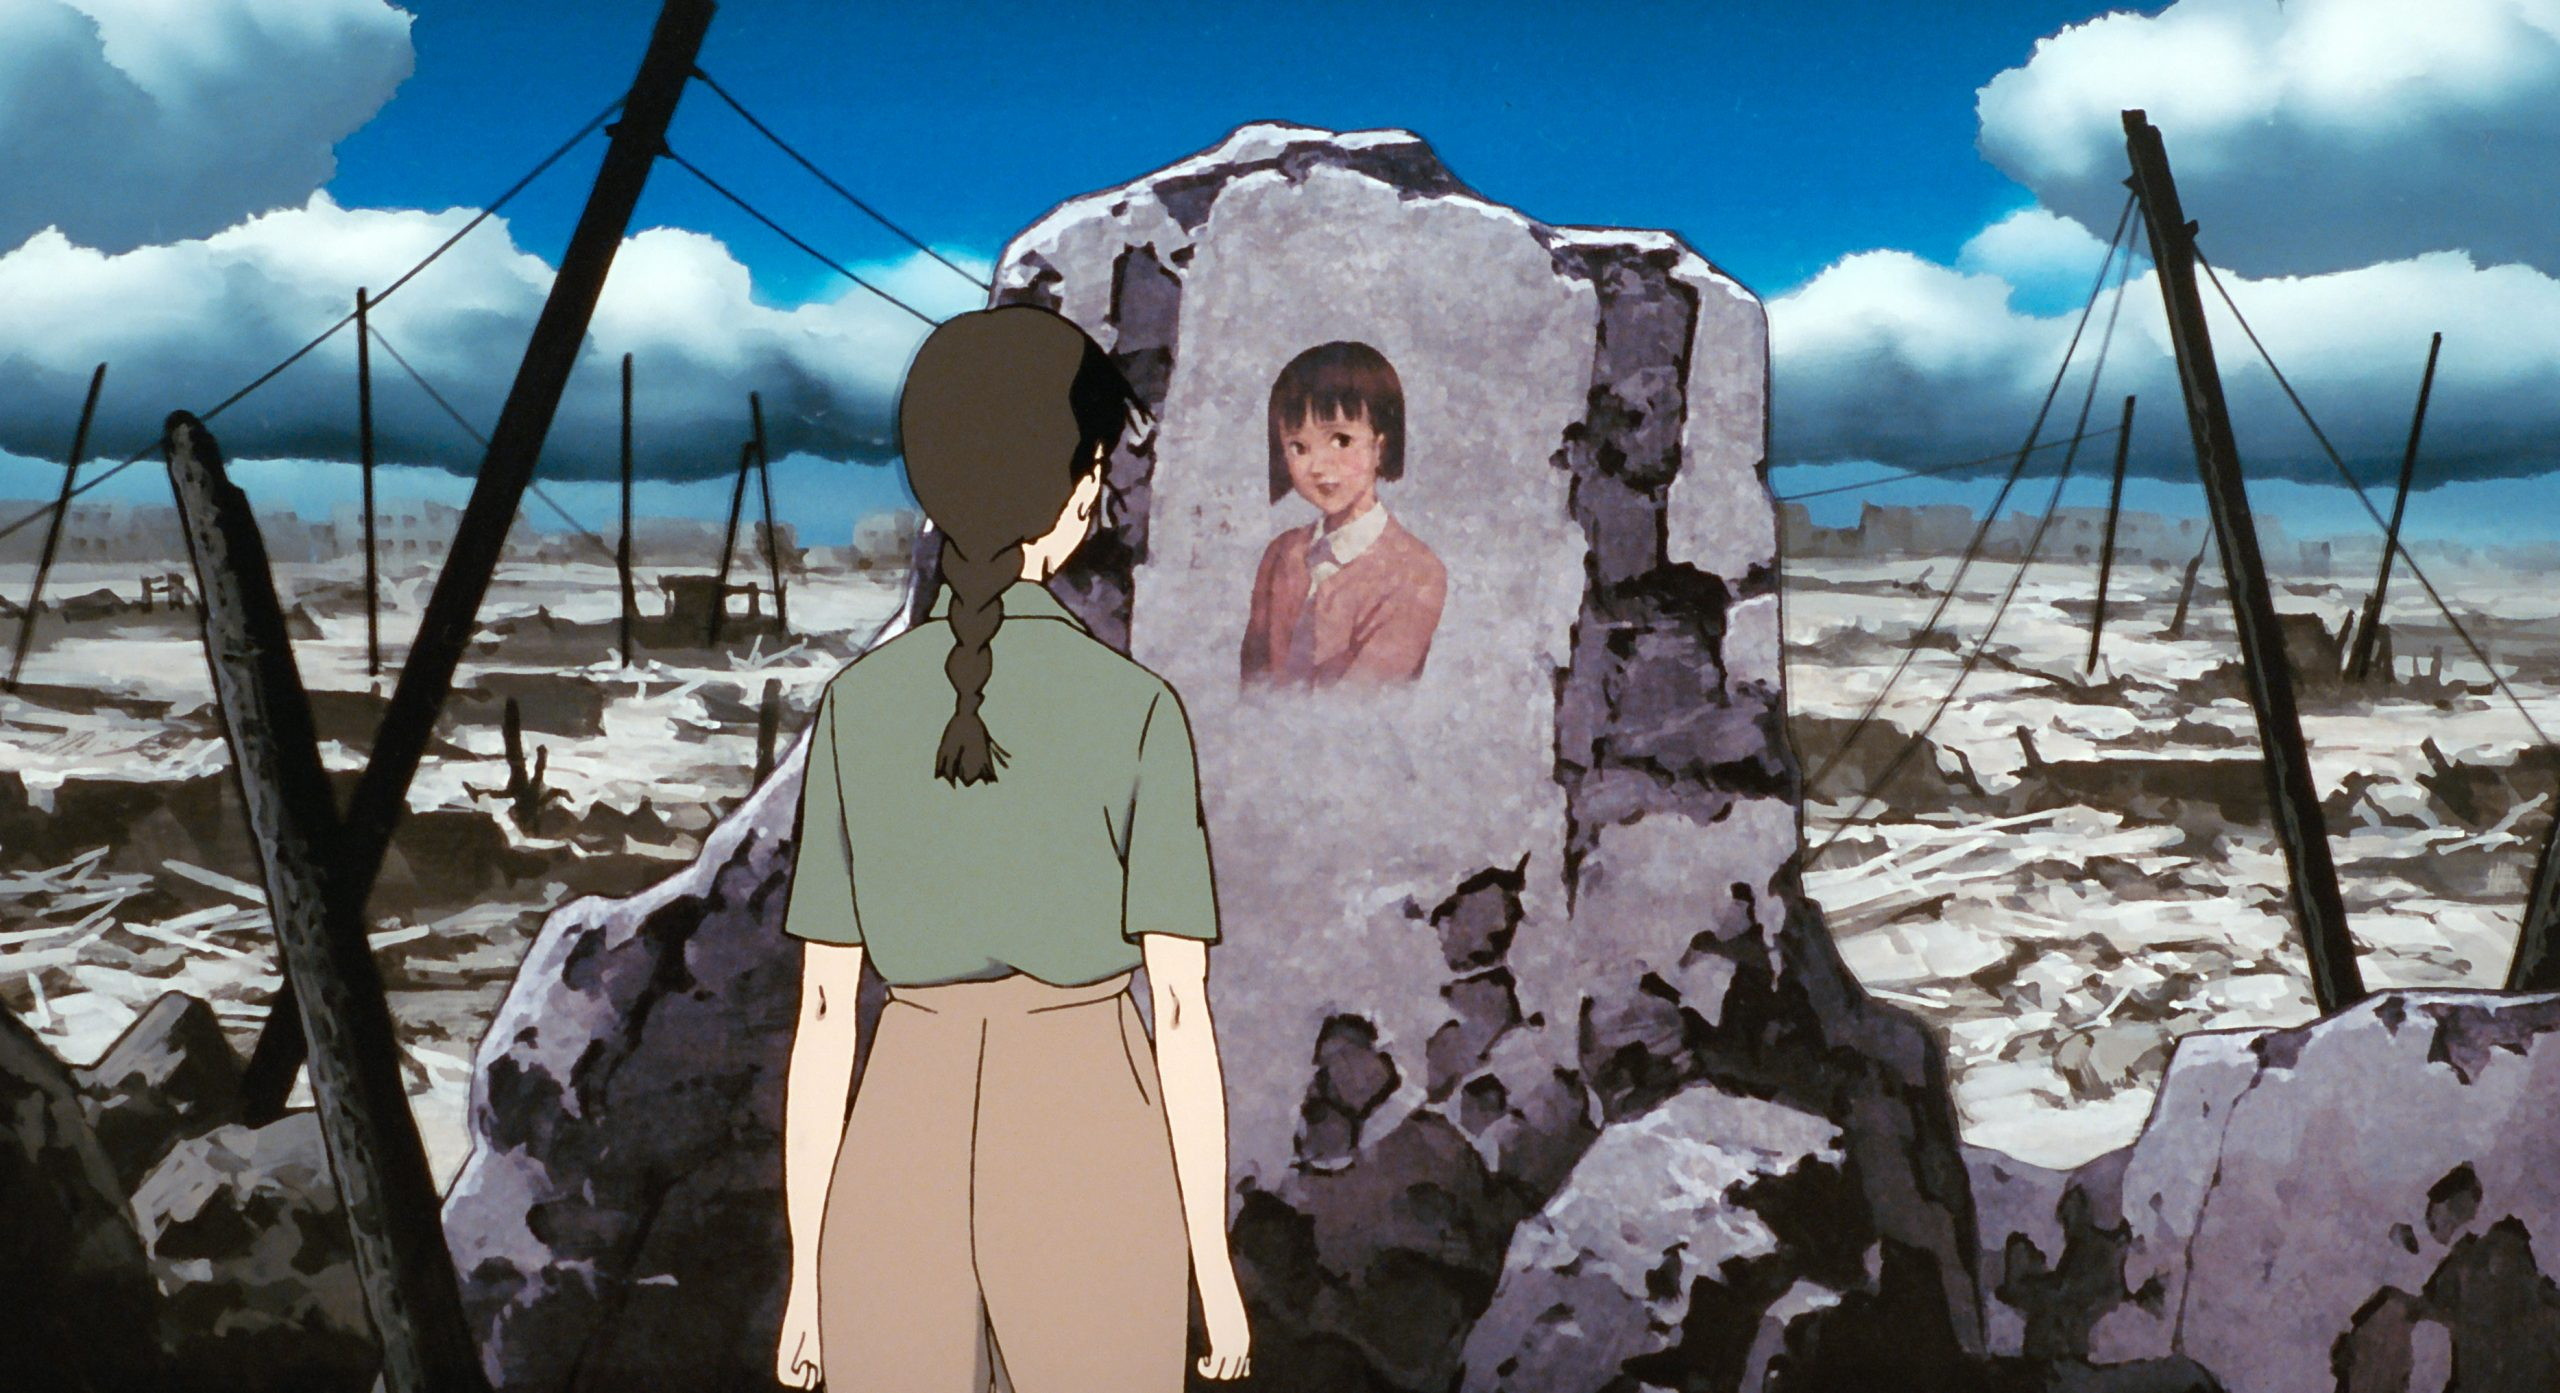 Chasing Him: What I learned from Satoshi Kon's 'Millennium Actress' (2001)